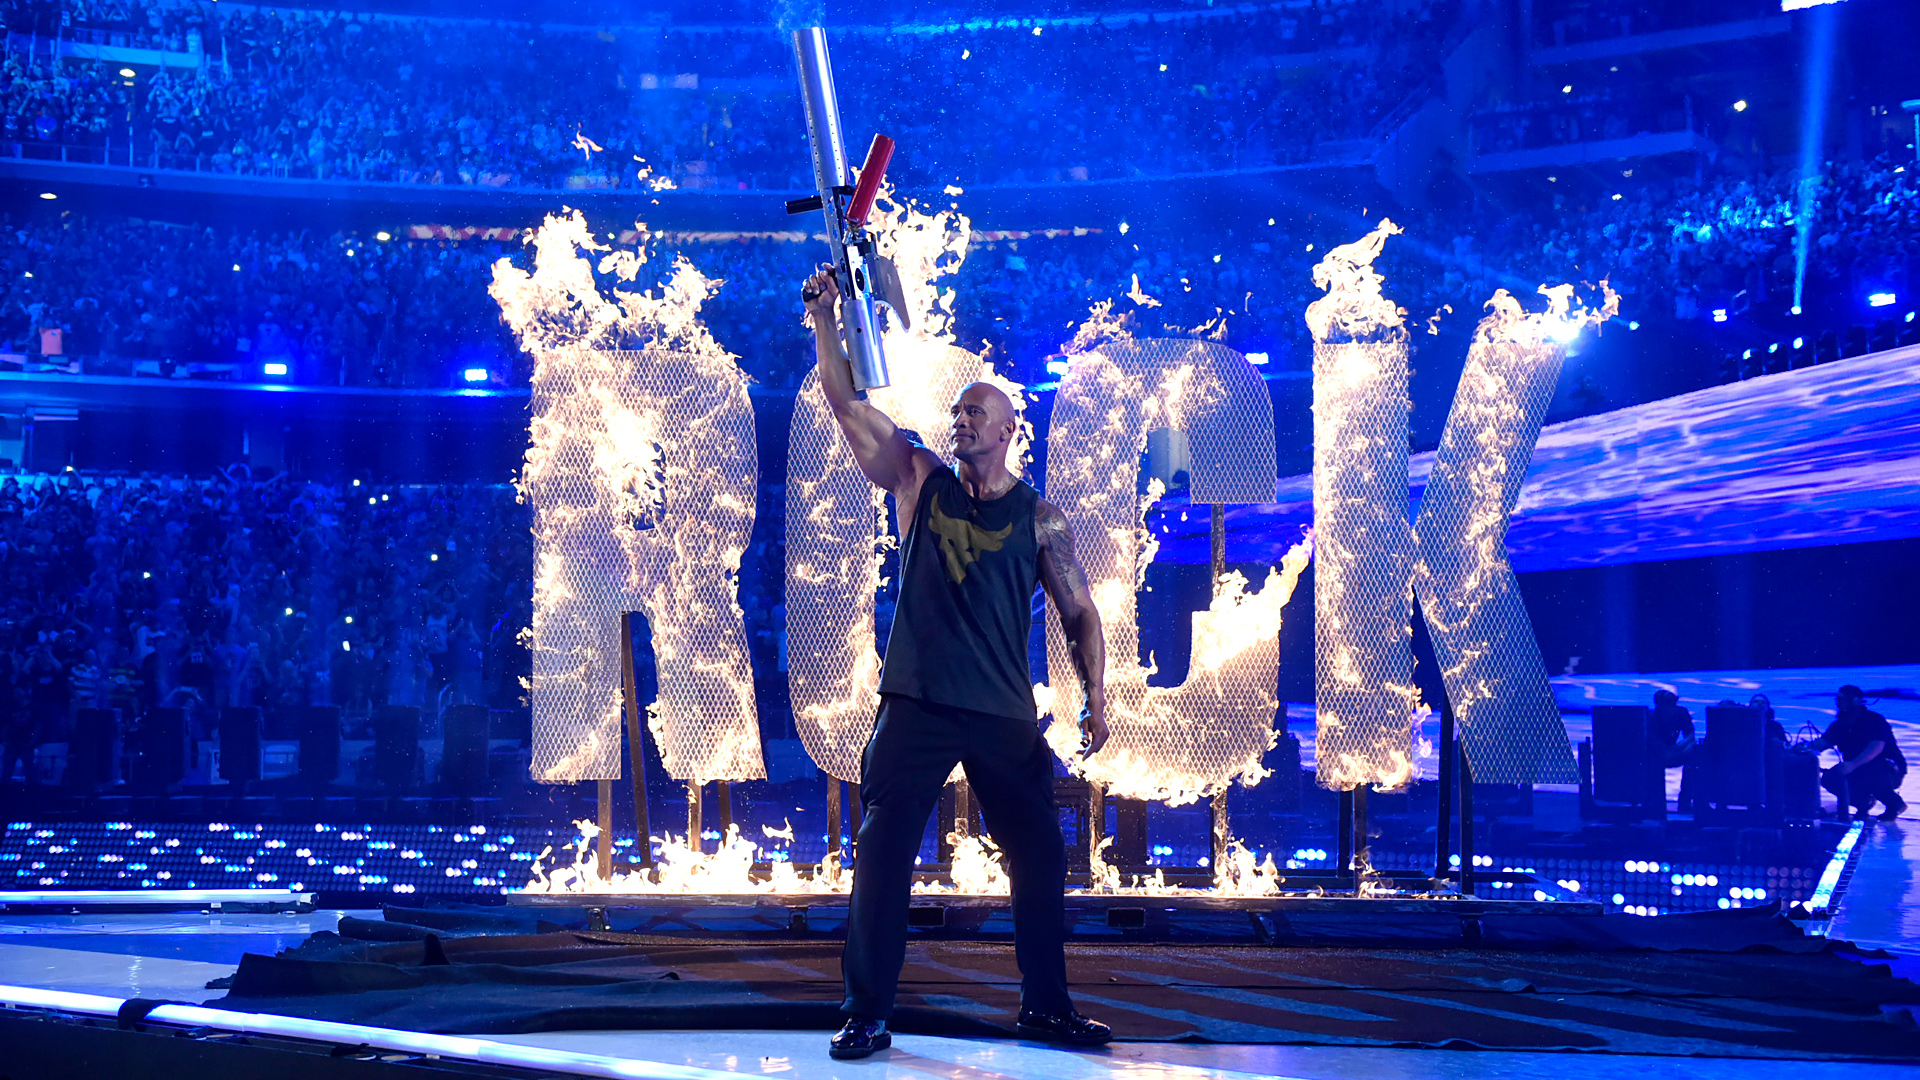 The WrestleMania That Never Was: Has WWE Changed the Purpose of Their Biggest Event?